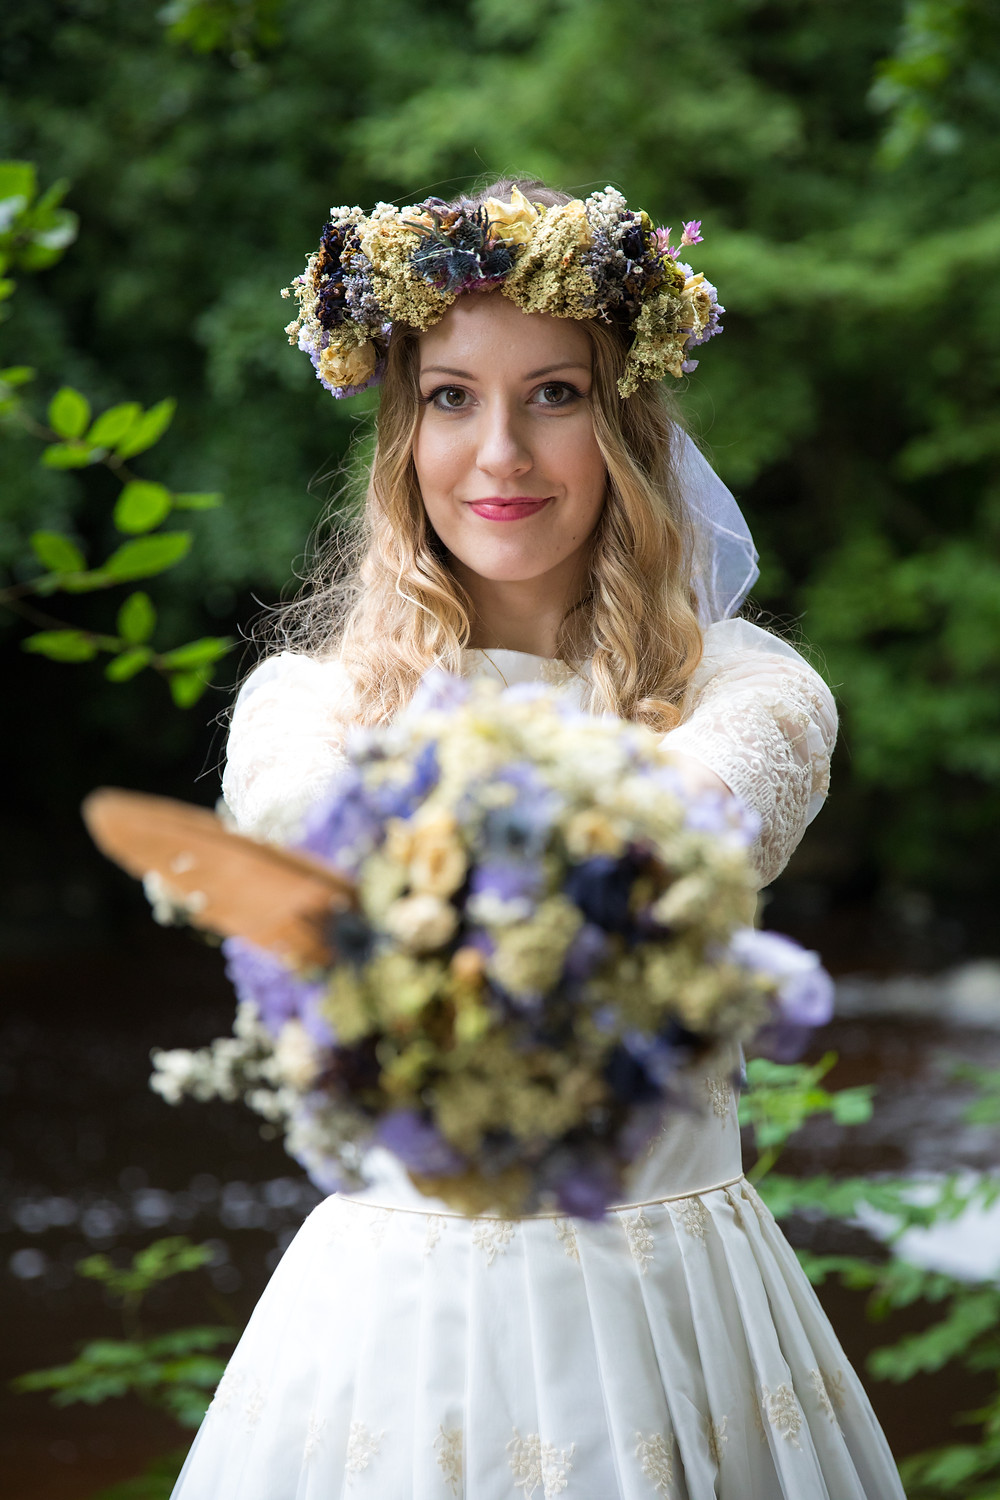 A wedding photo of bride with her bouquet